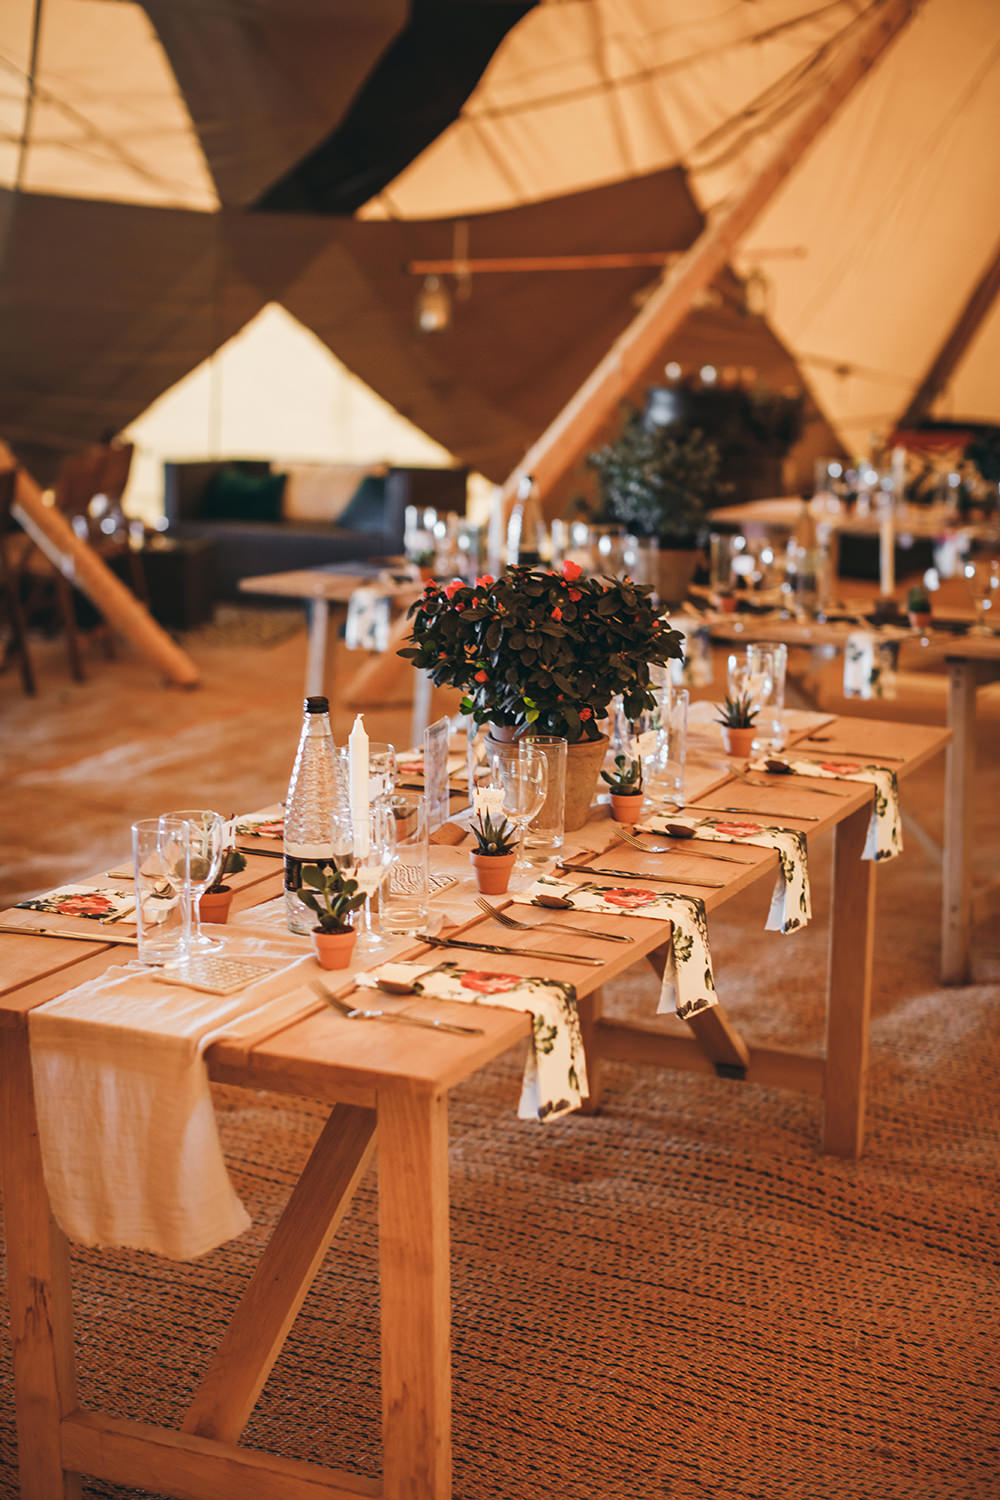 Tipi Long Tables Decor Runner Pot Plant Autumnal Rustic Wedding Mark Tattersall Photography